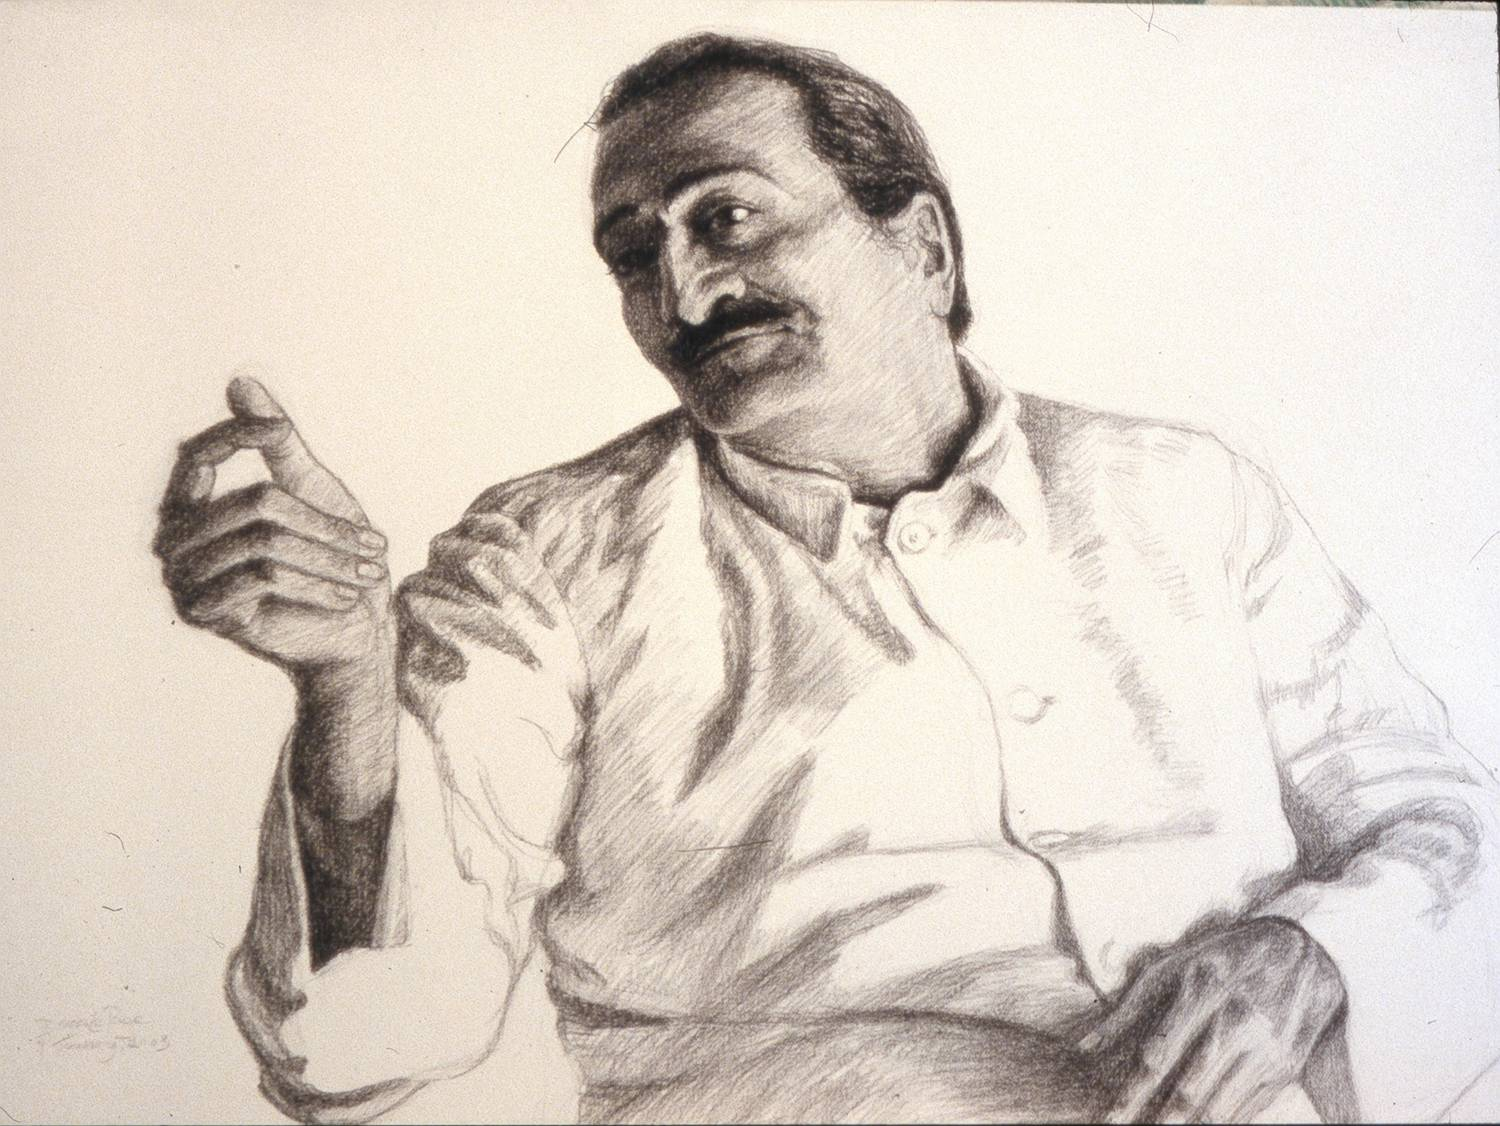 AVATAR MEHER BABA in a charcoal drawing by artist Diana Le Page.